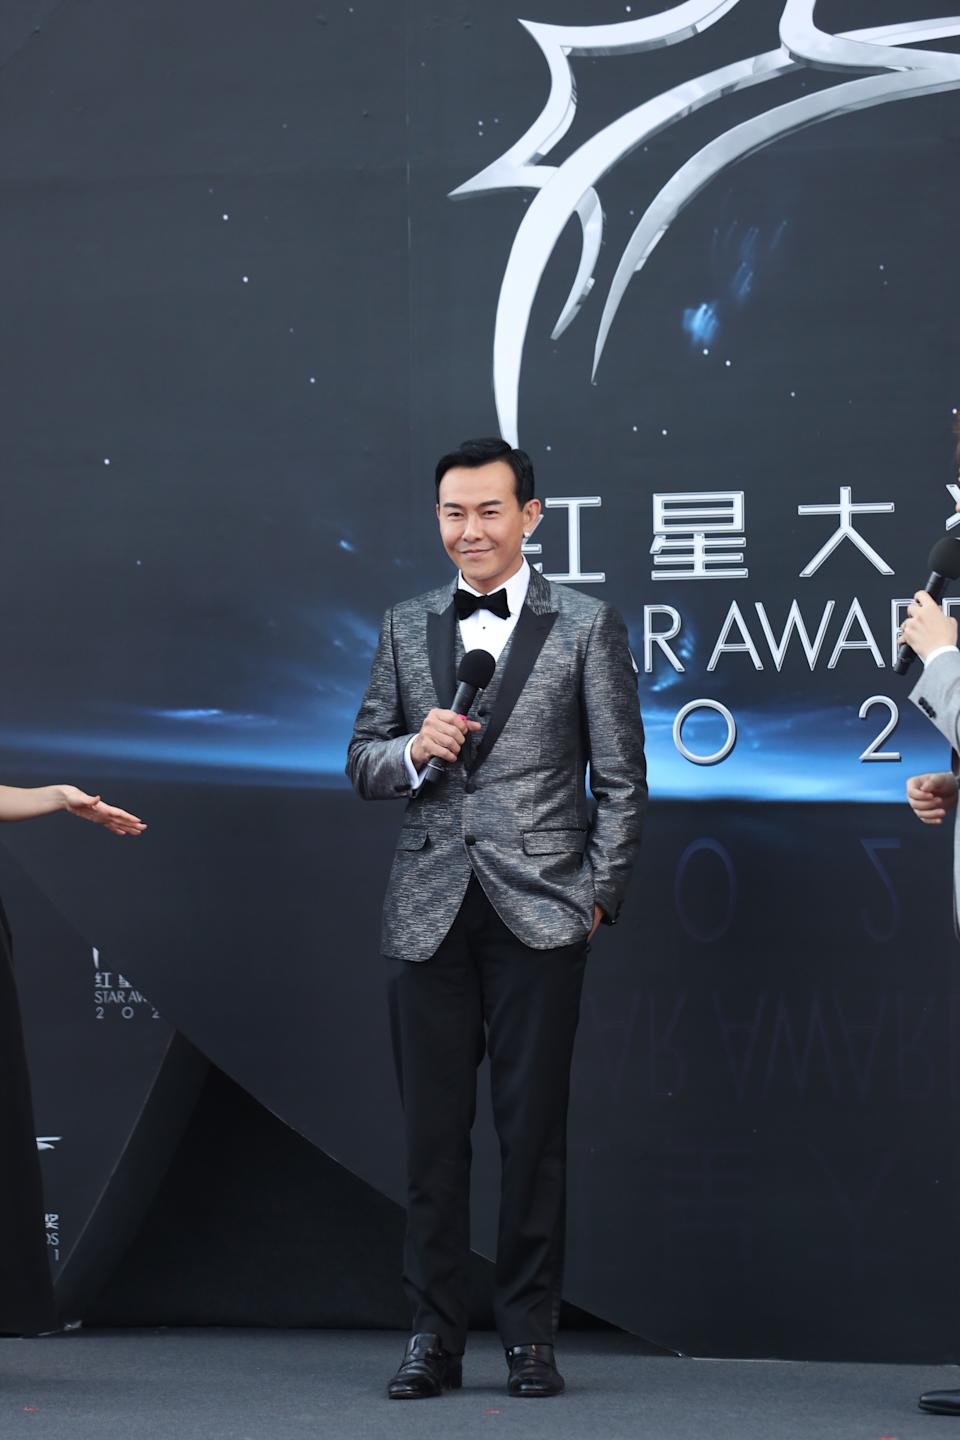 Bryan Wong at Star Awards held at Changi Airport on 18 April 2021. (Photo: Mediacorp)